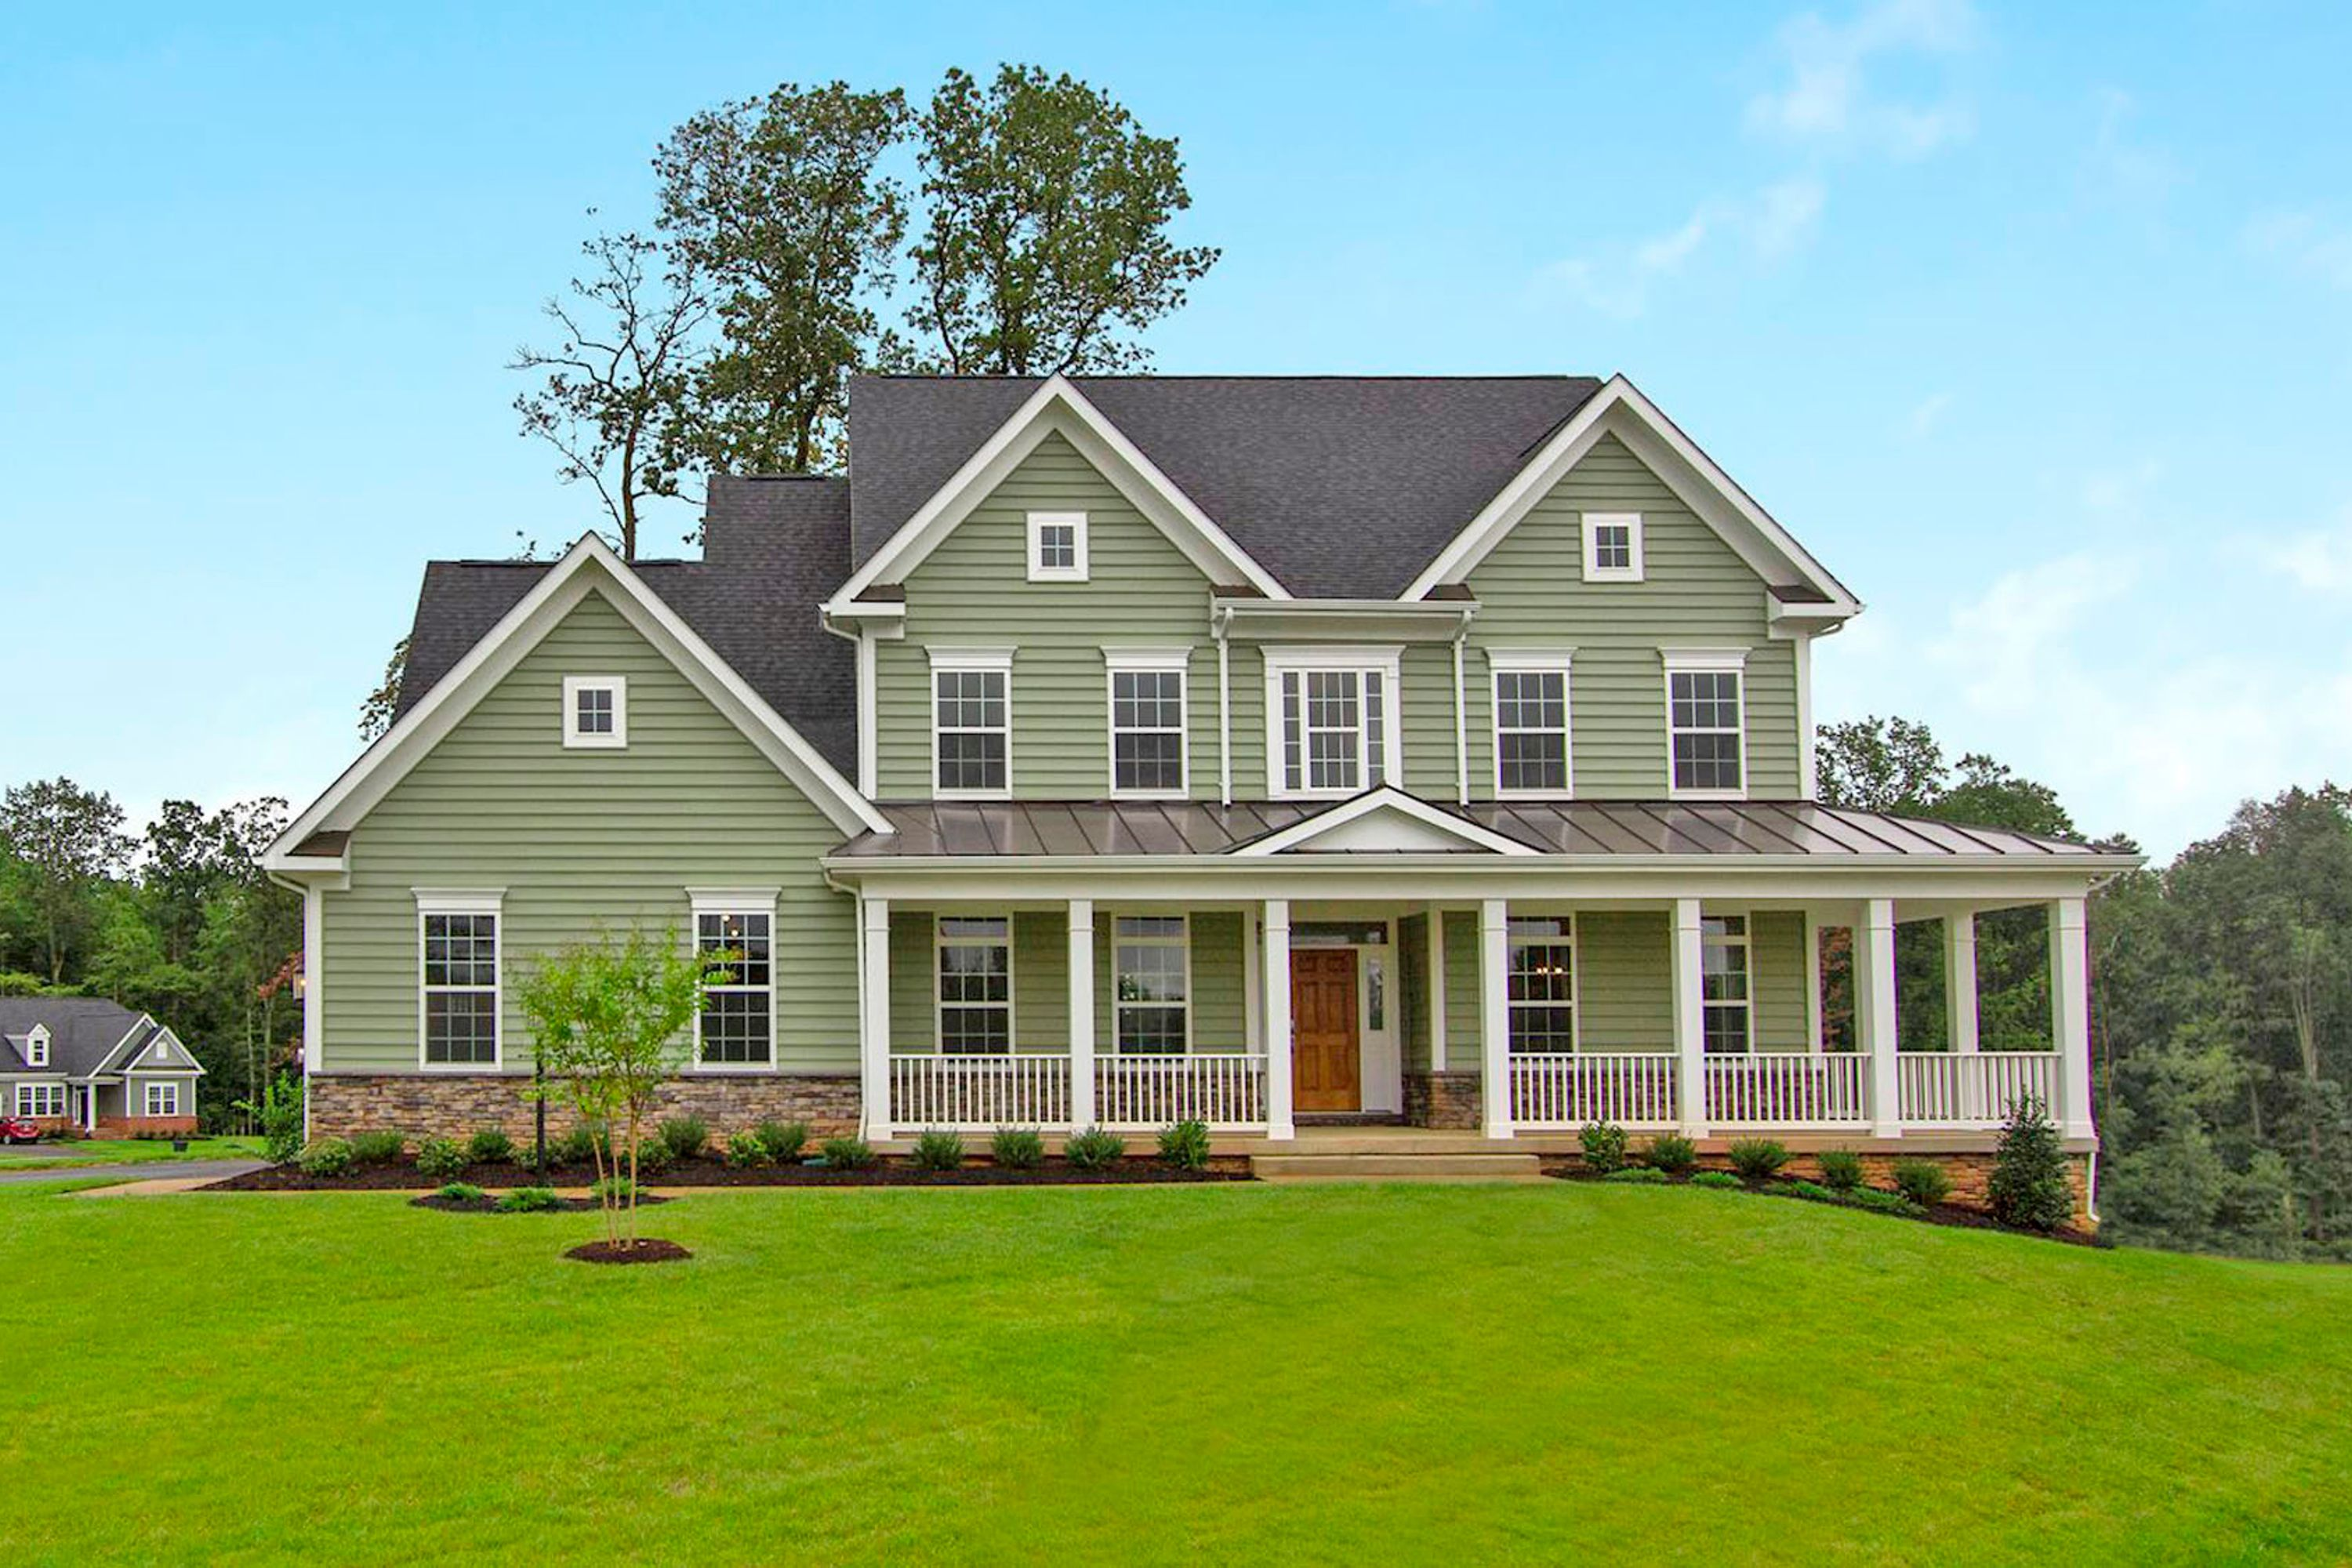 Two-story house by custom home builders in Montgomery County MD, Kettler Forlines